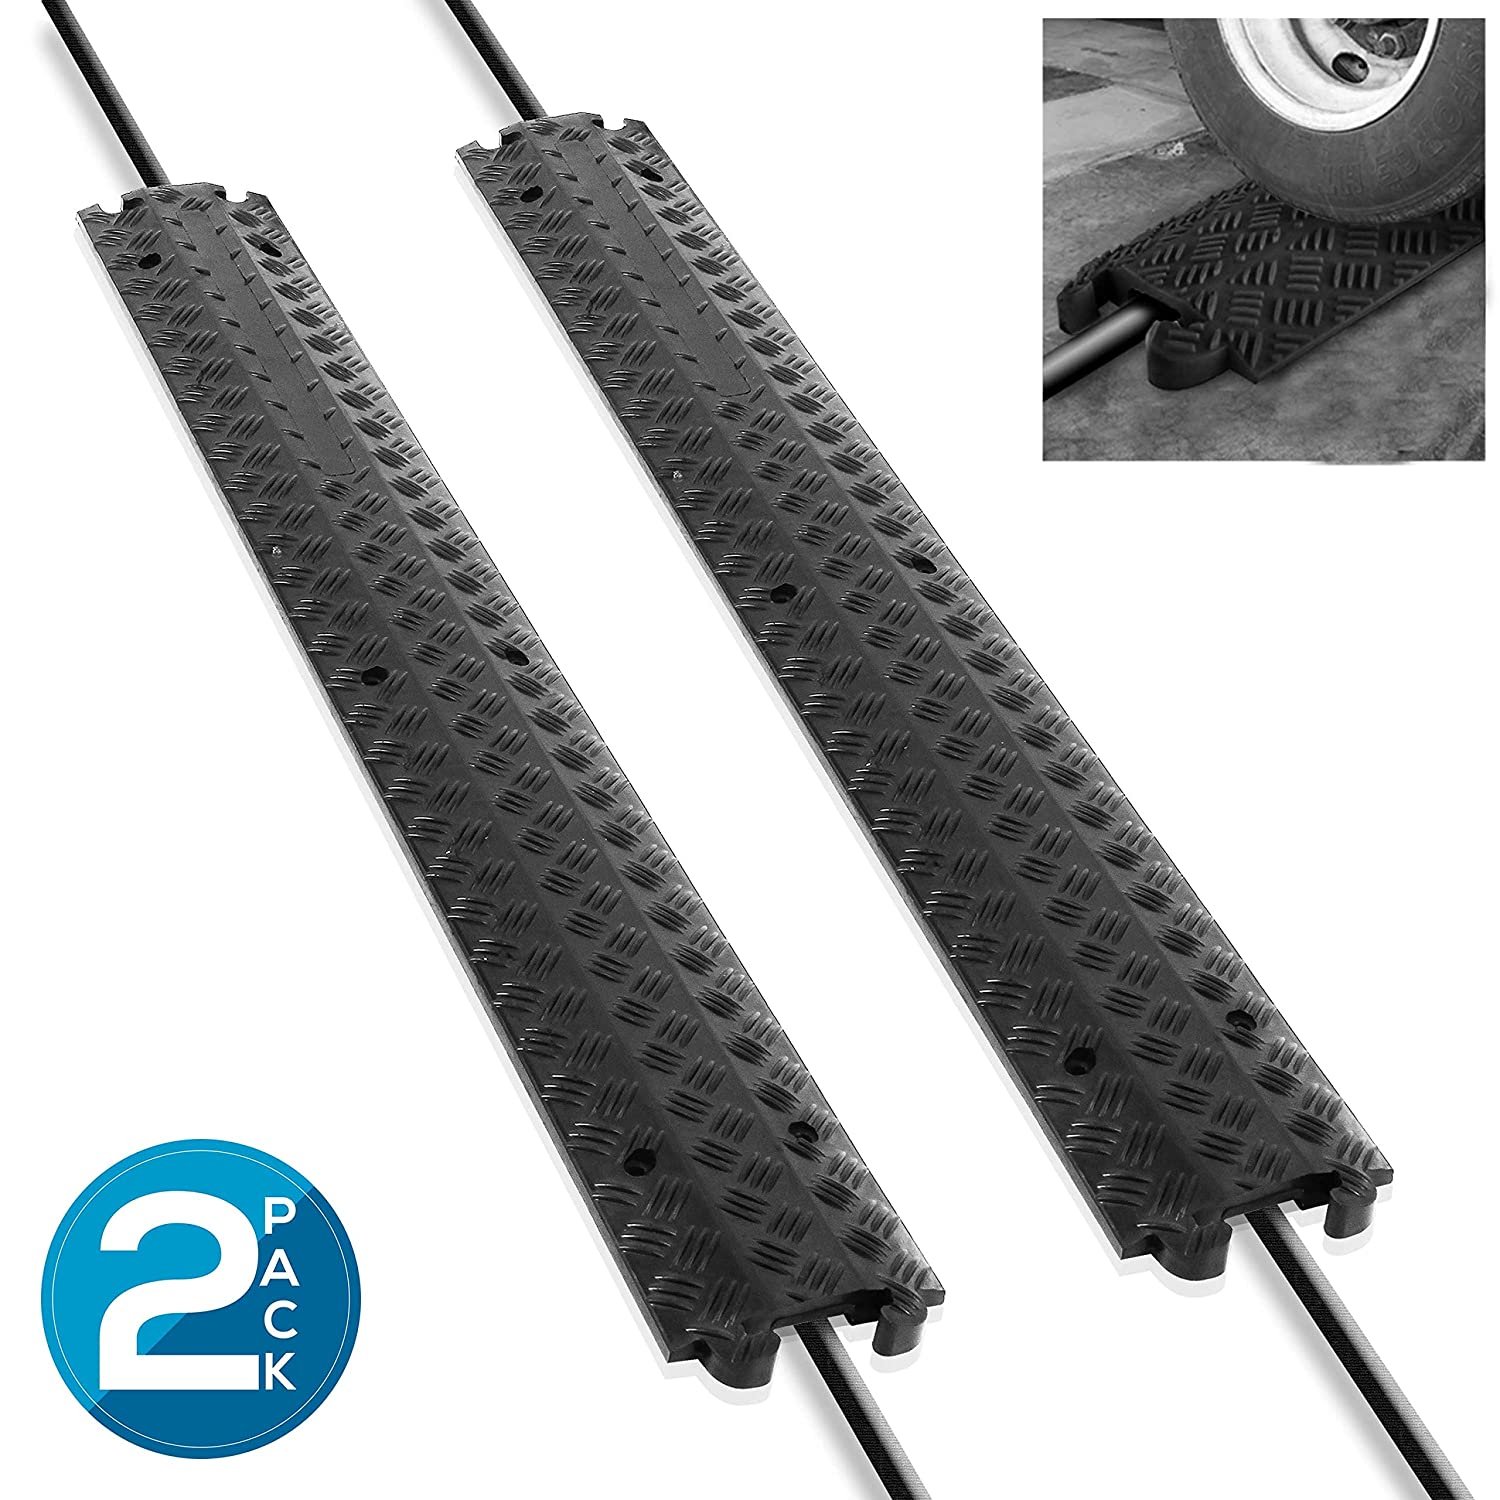 Pyle Black/Double Ramp-1 Channel Rubber Floor Cord Concealer-Heavy Duty Cable Protector Wire/Hose/Pipe Hider Driveway Protective Covering Armor PCBLCO101X2 (Pair)